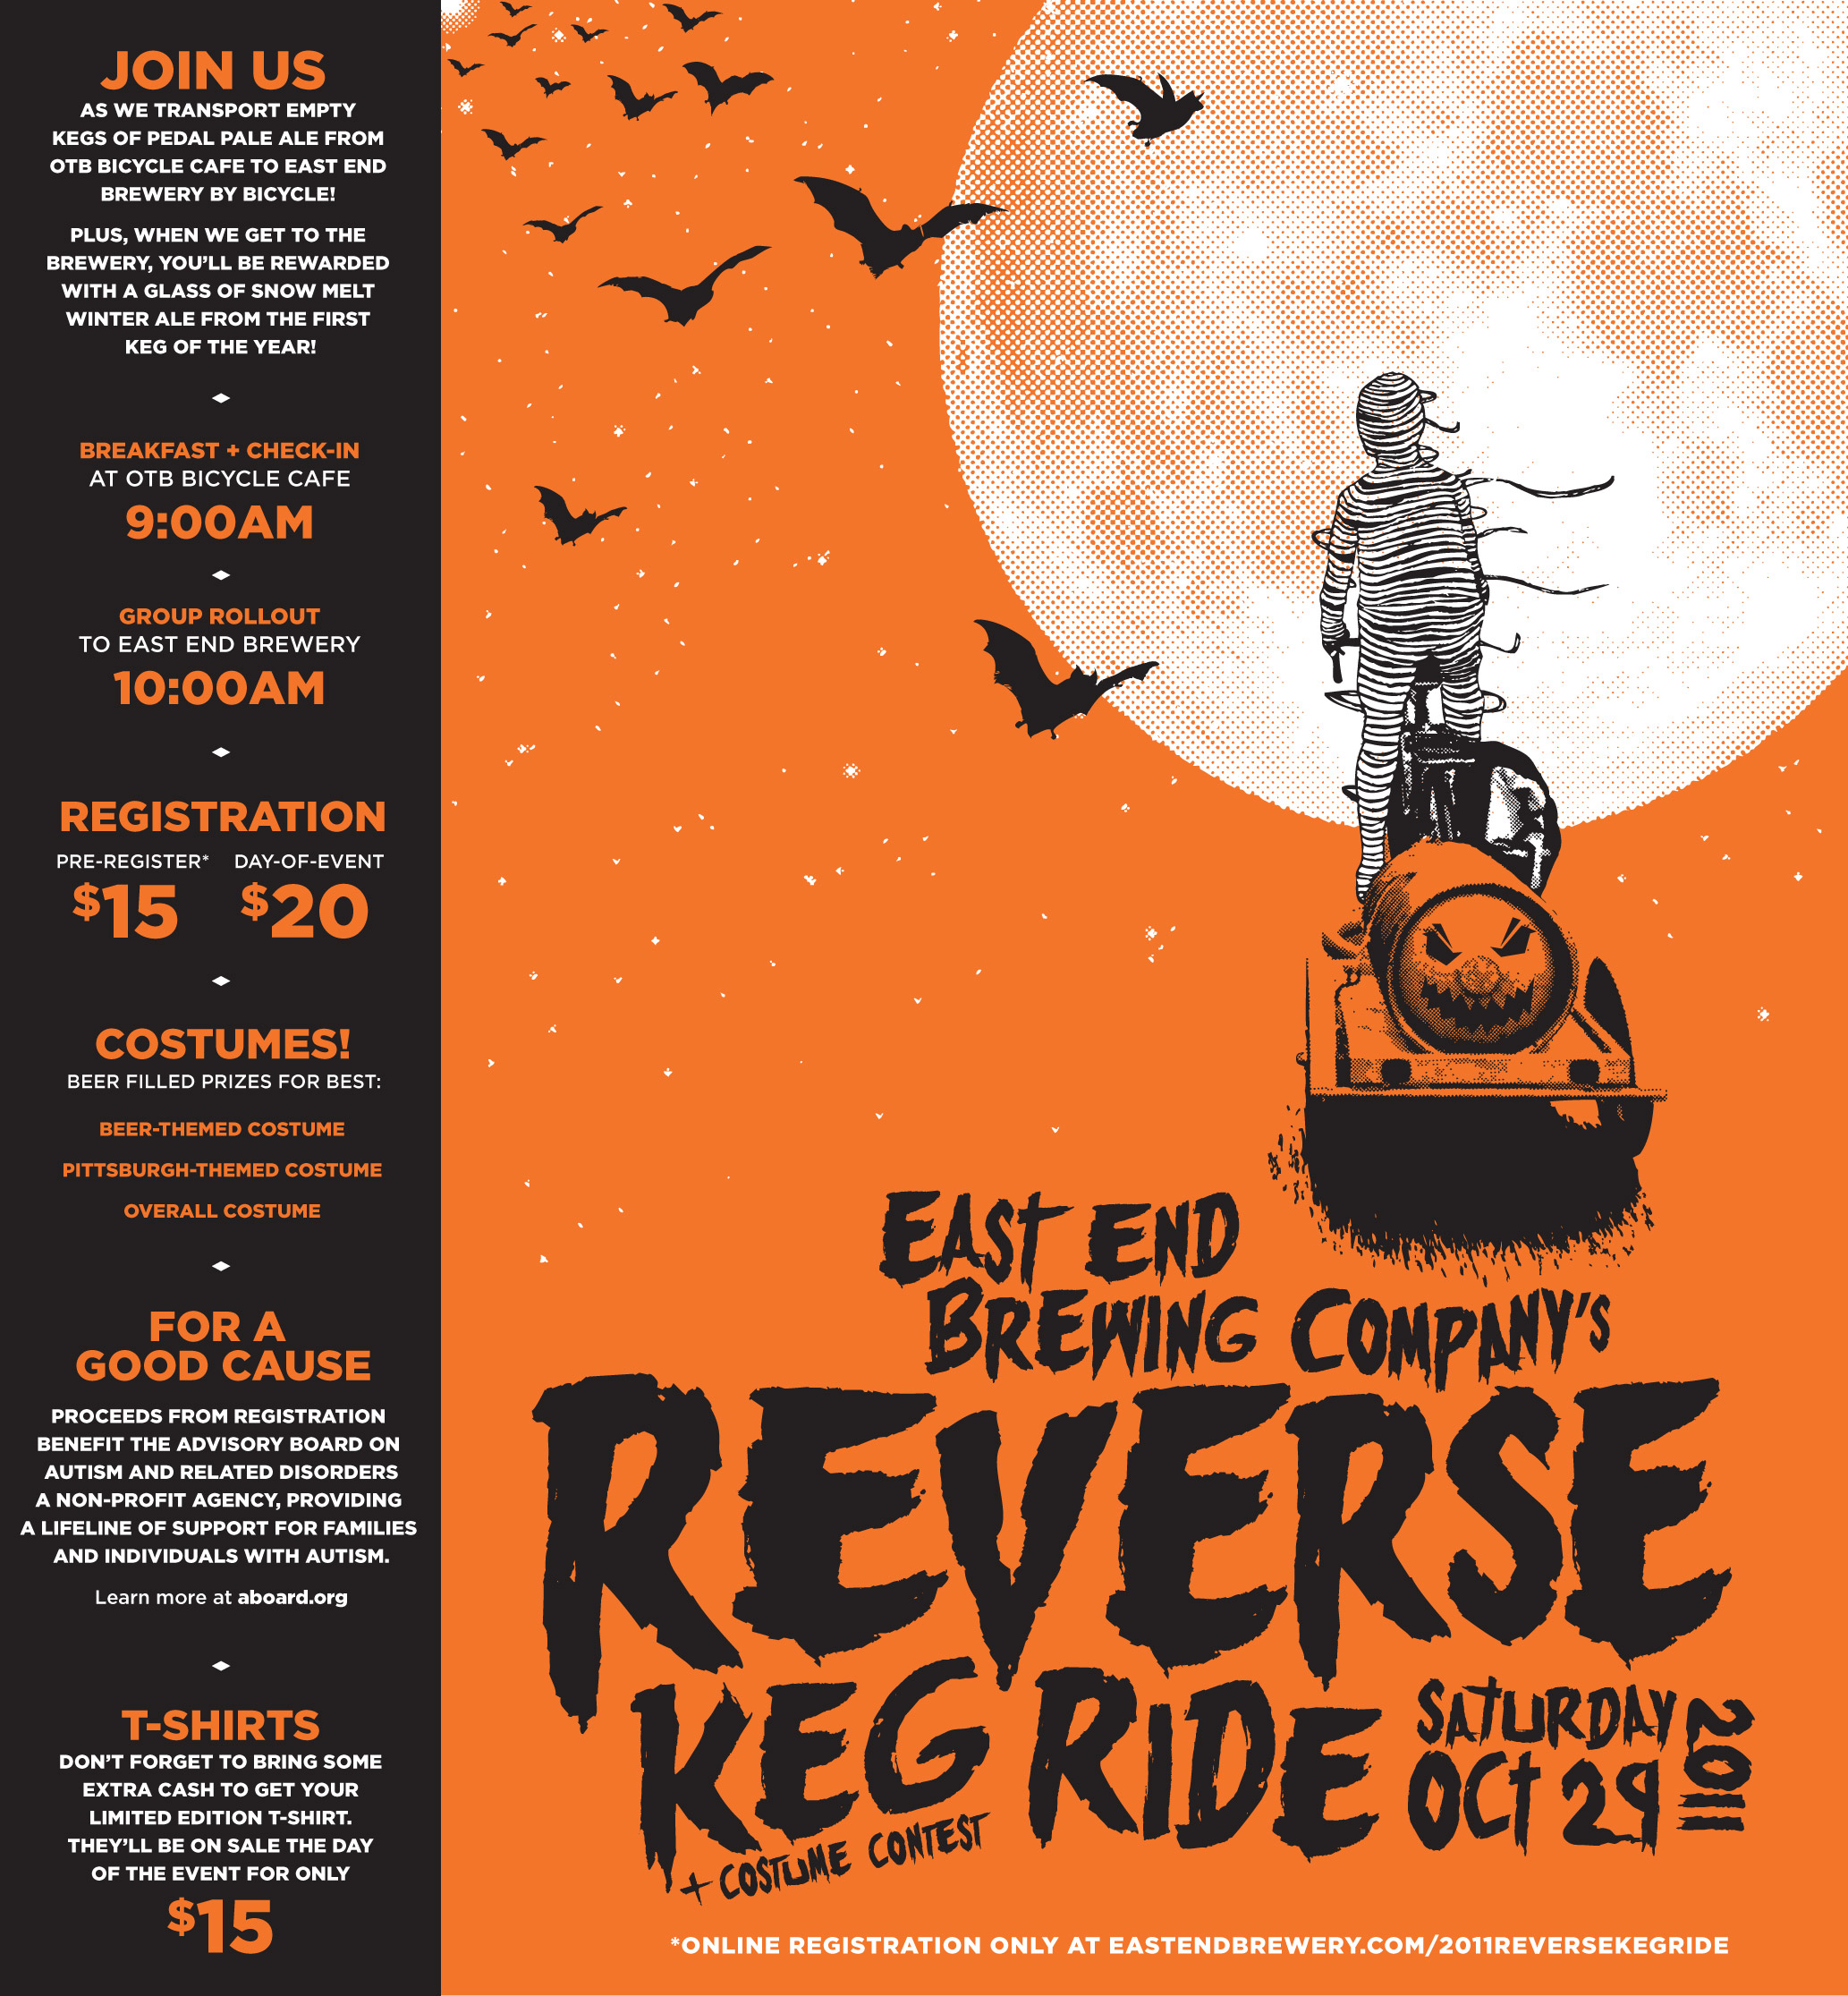 Reverse Keg Ride 2011 Includes Costume Contest for Best PGH Costume!